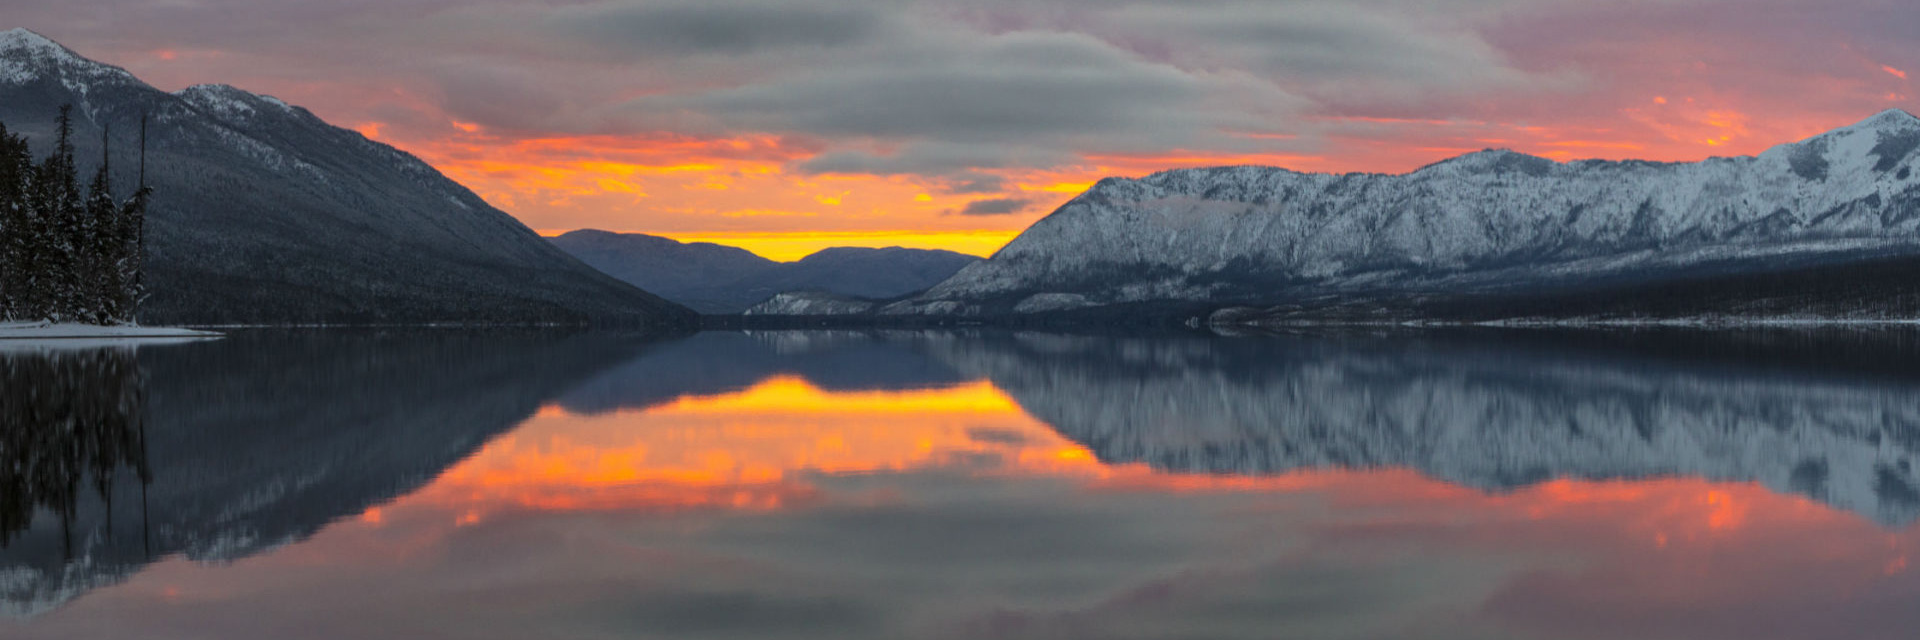 Sunset over Apgar Mountains with lake